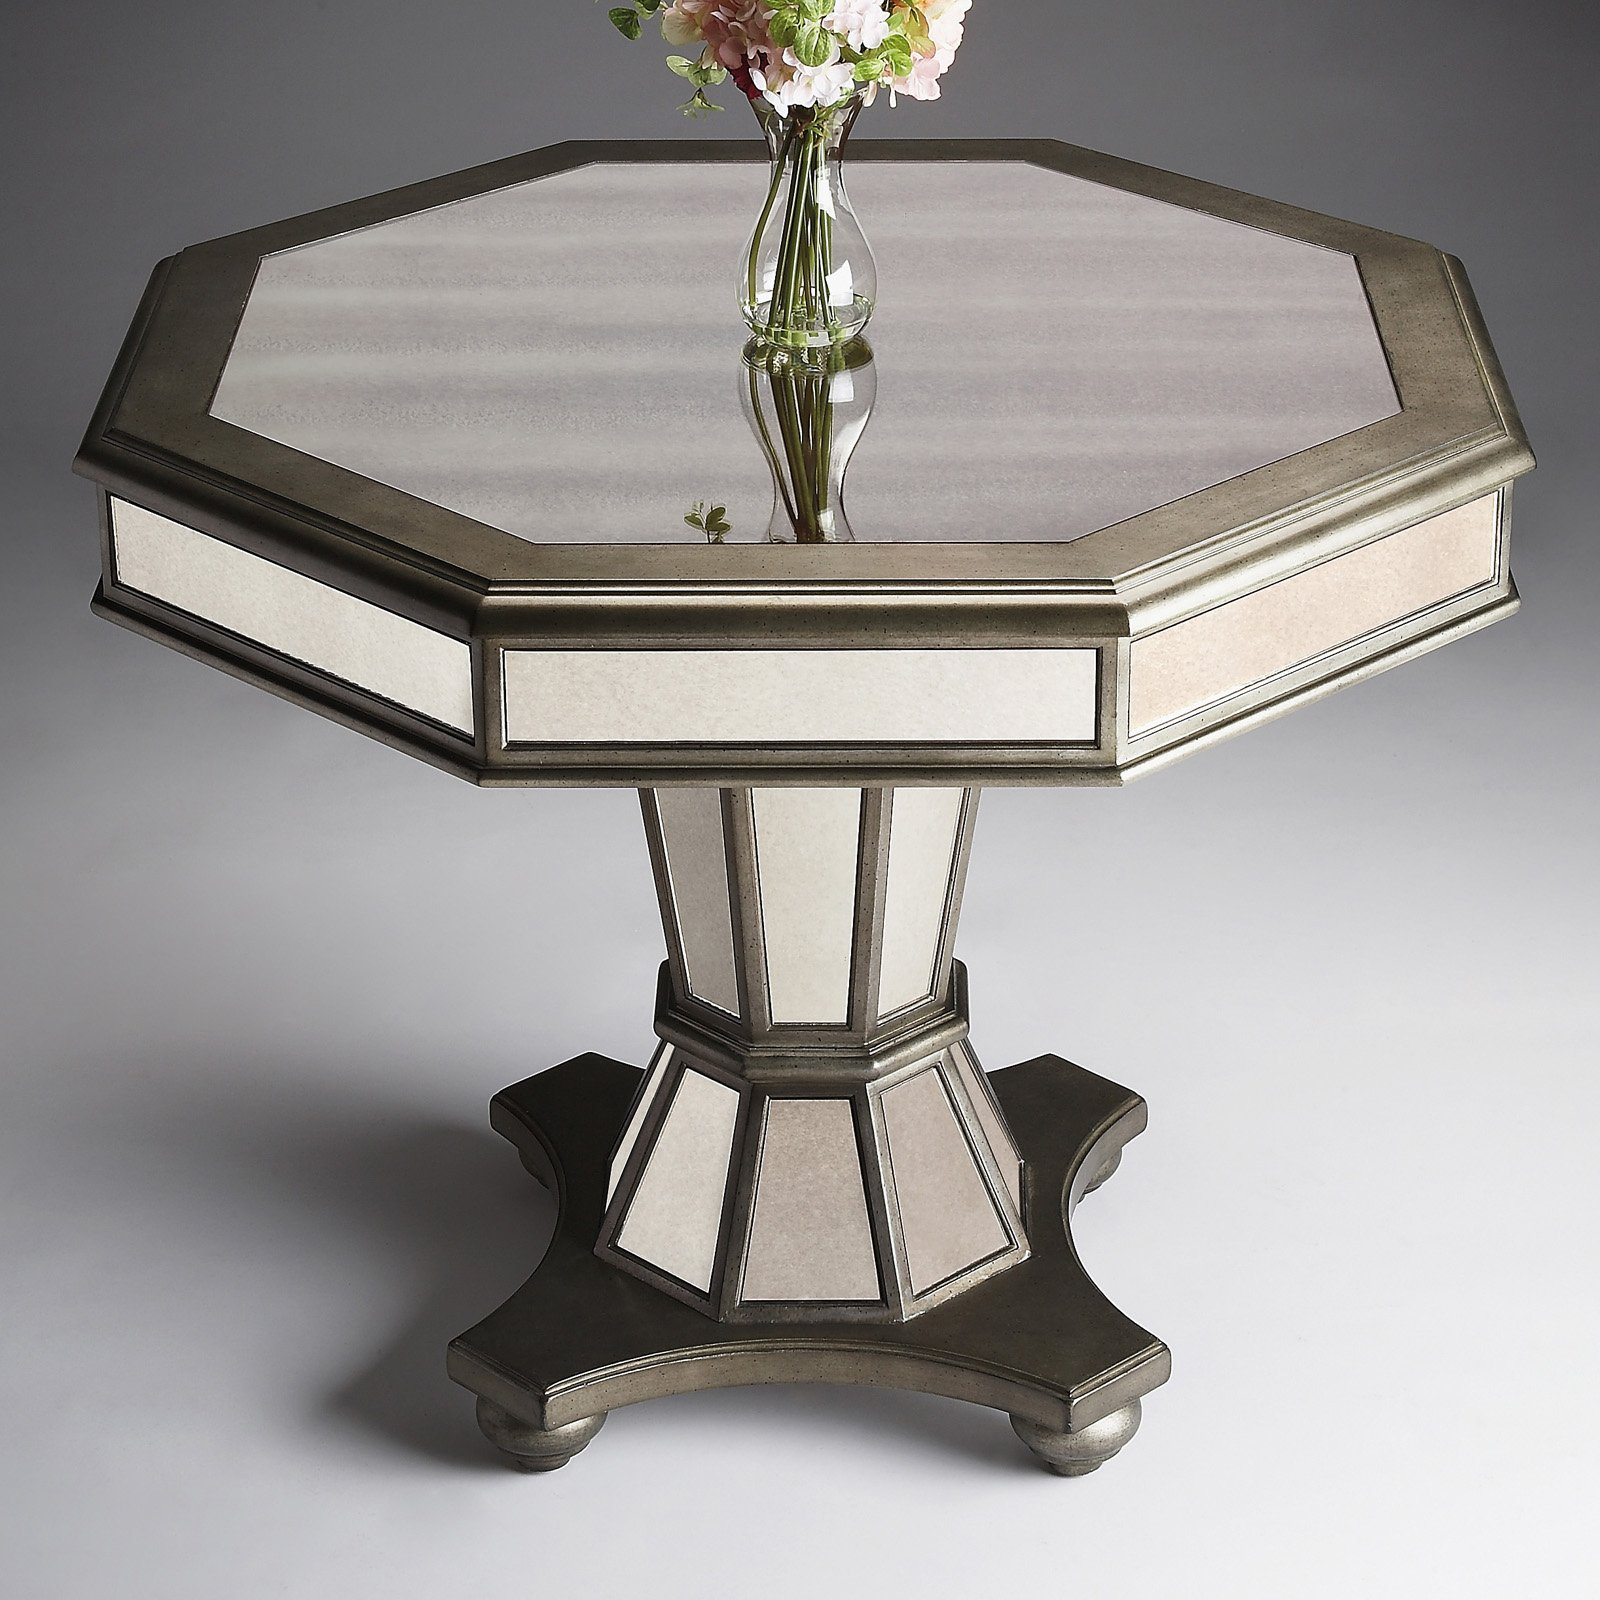 accent tables side for living roomcorner bedside coffee table topaccent tablesgold and glass tableround tablefaceted mirror tableaccent with drawersmirrored furniture mirrored